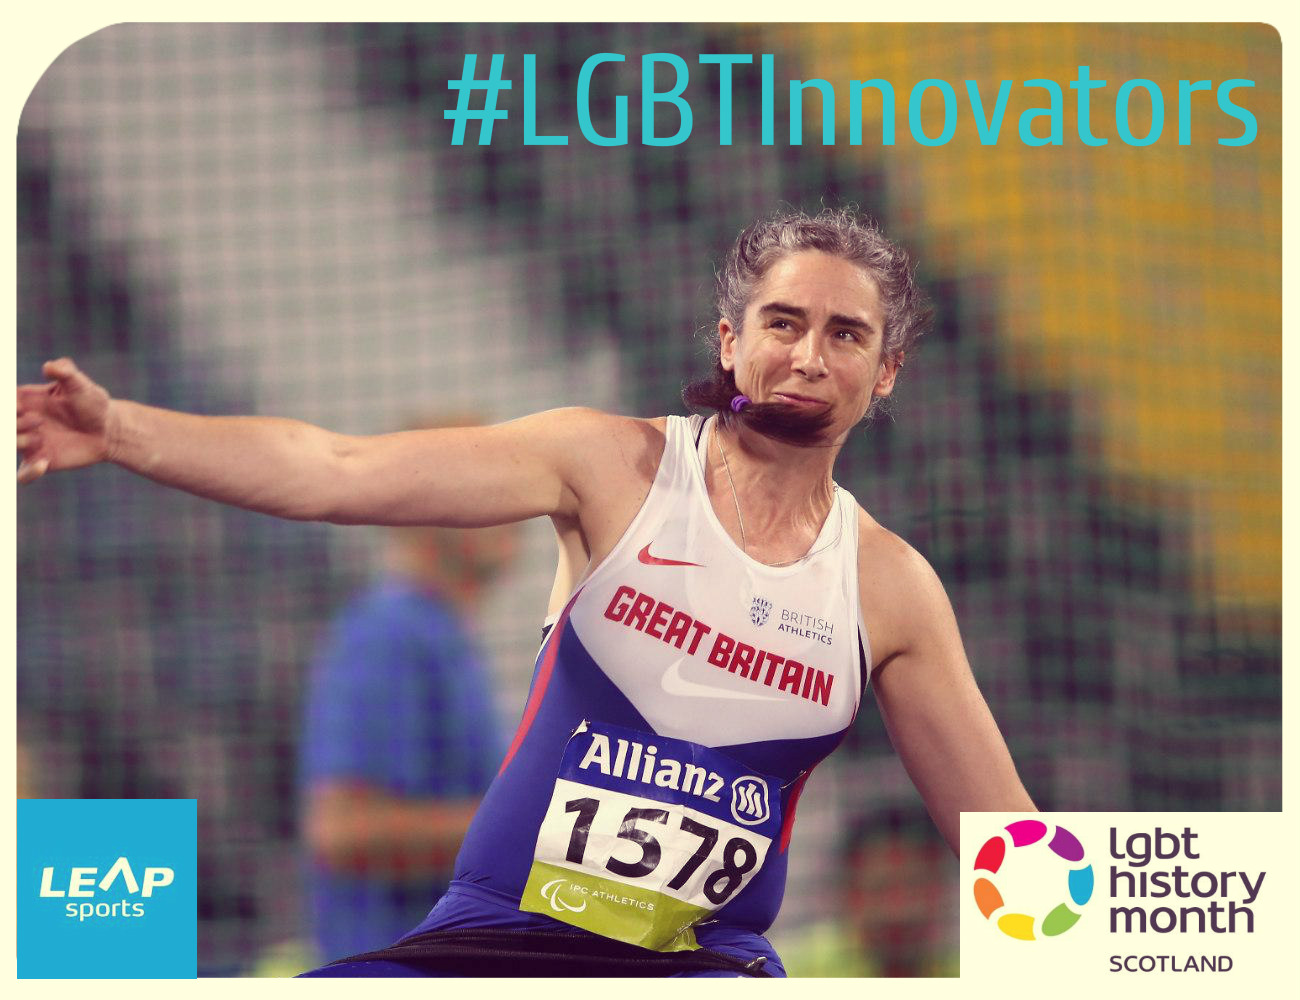 #LGBTInnovators - Paralympic Athlete Claire Harvey